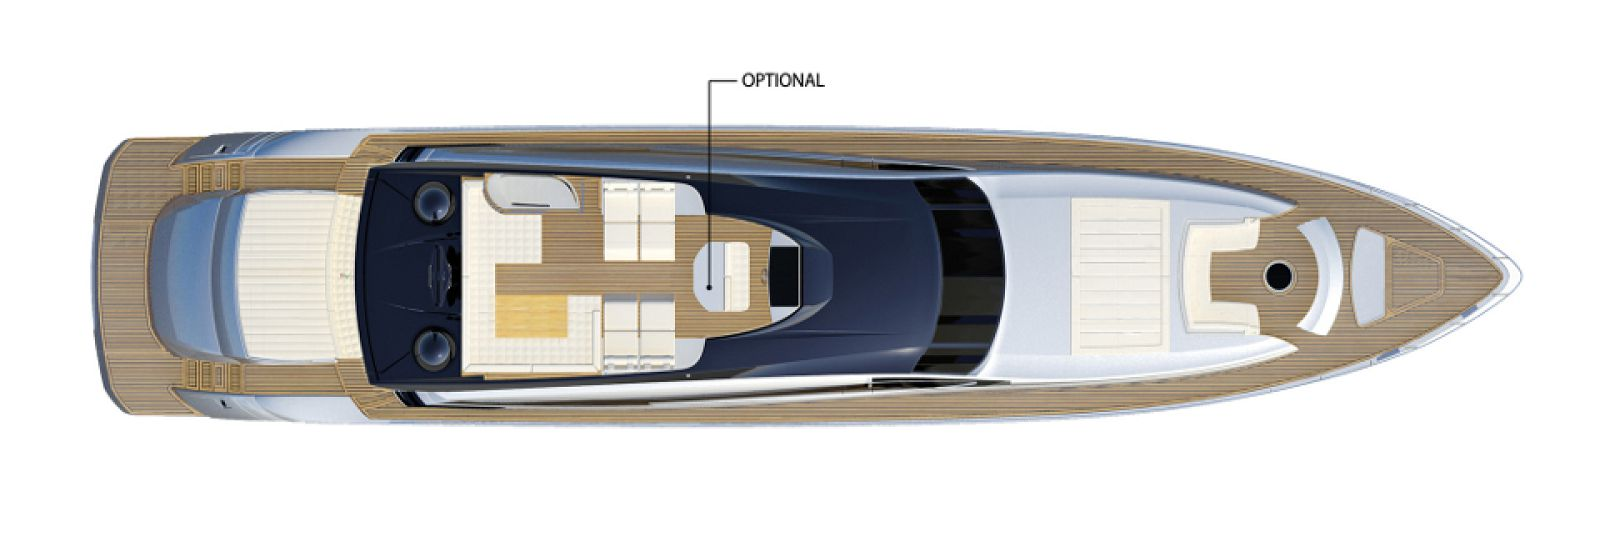 Pershing 108 Layout - New Luxury Yacht for Sale >